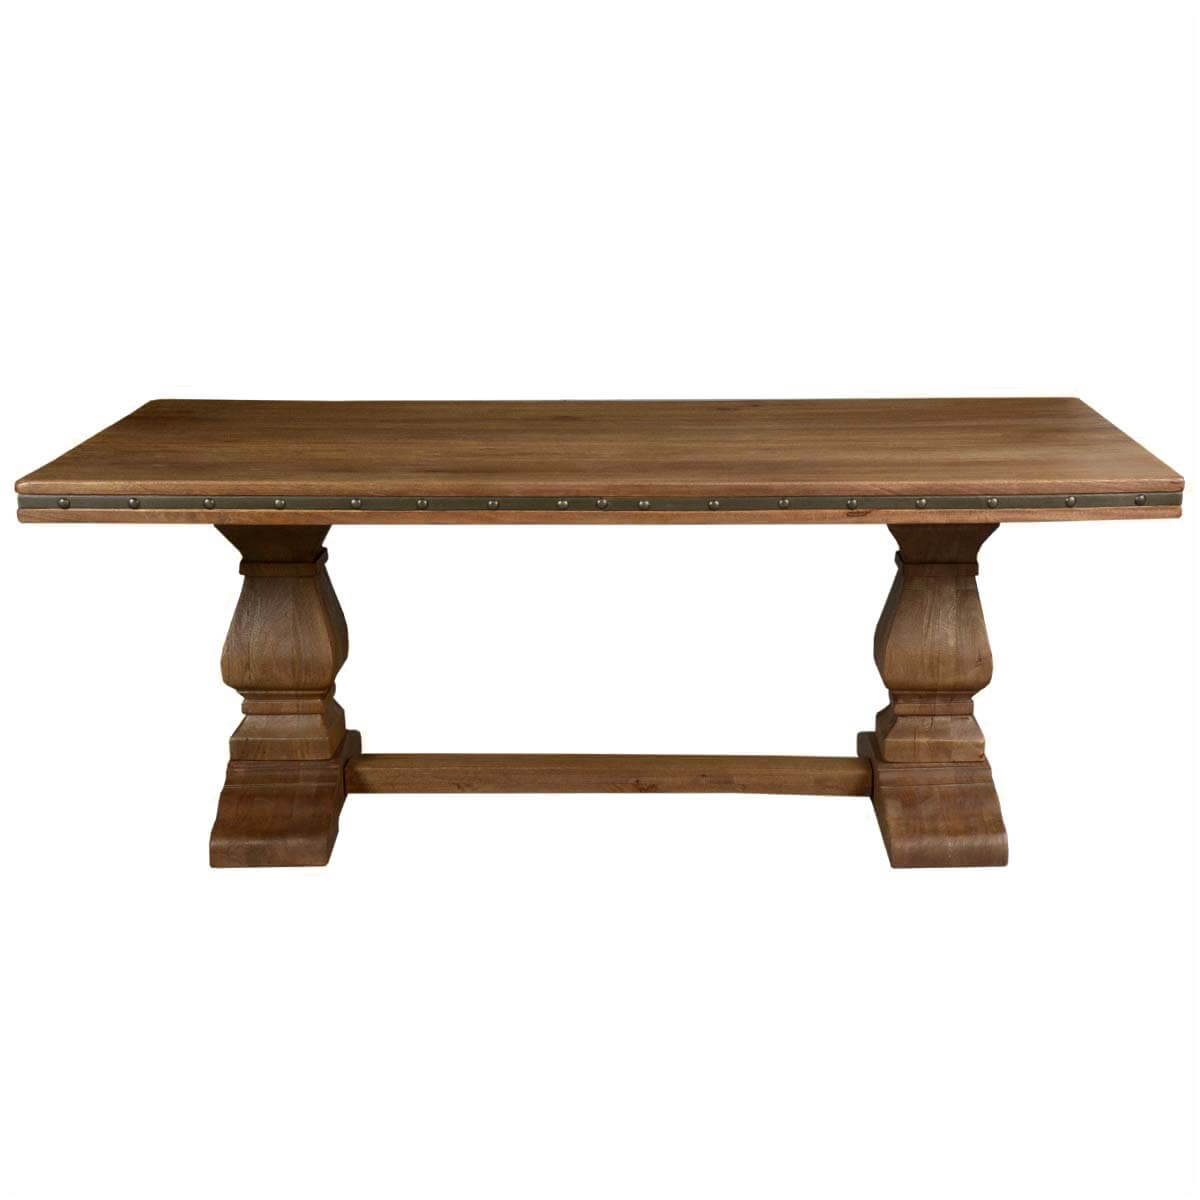 rustic solid wood trestle pedestal base harvest dining table. Black Bedroom Furniture Sets. Home Design Ideas